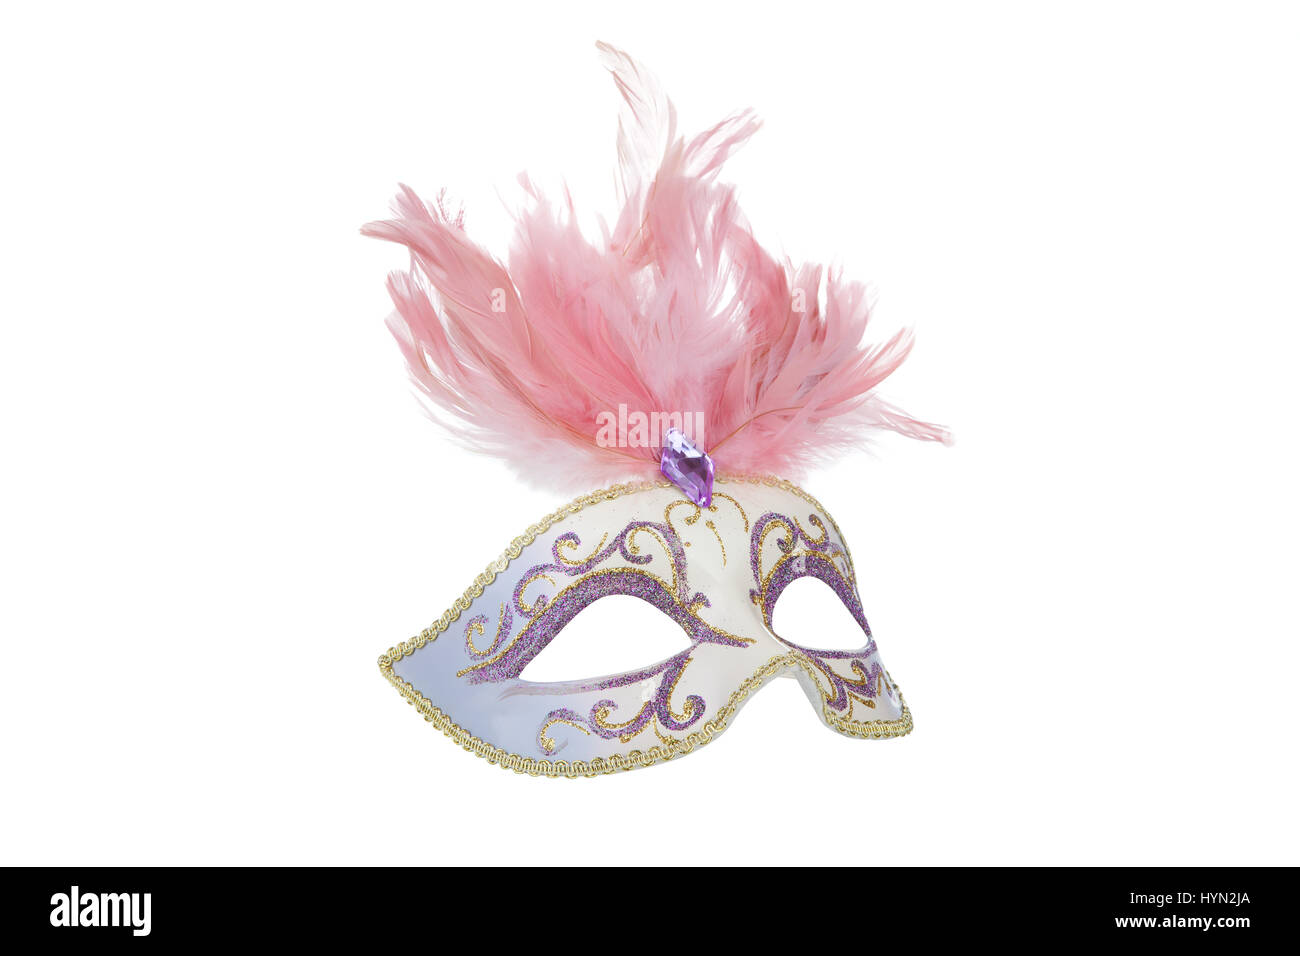 Beautiful carnival mask with pink feathers, isolated on white - Stock Image